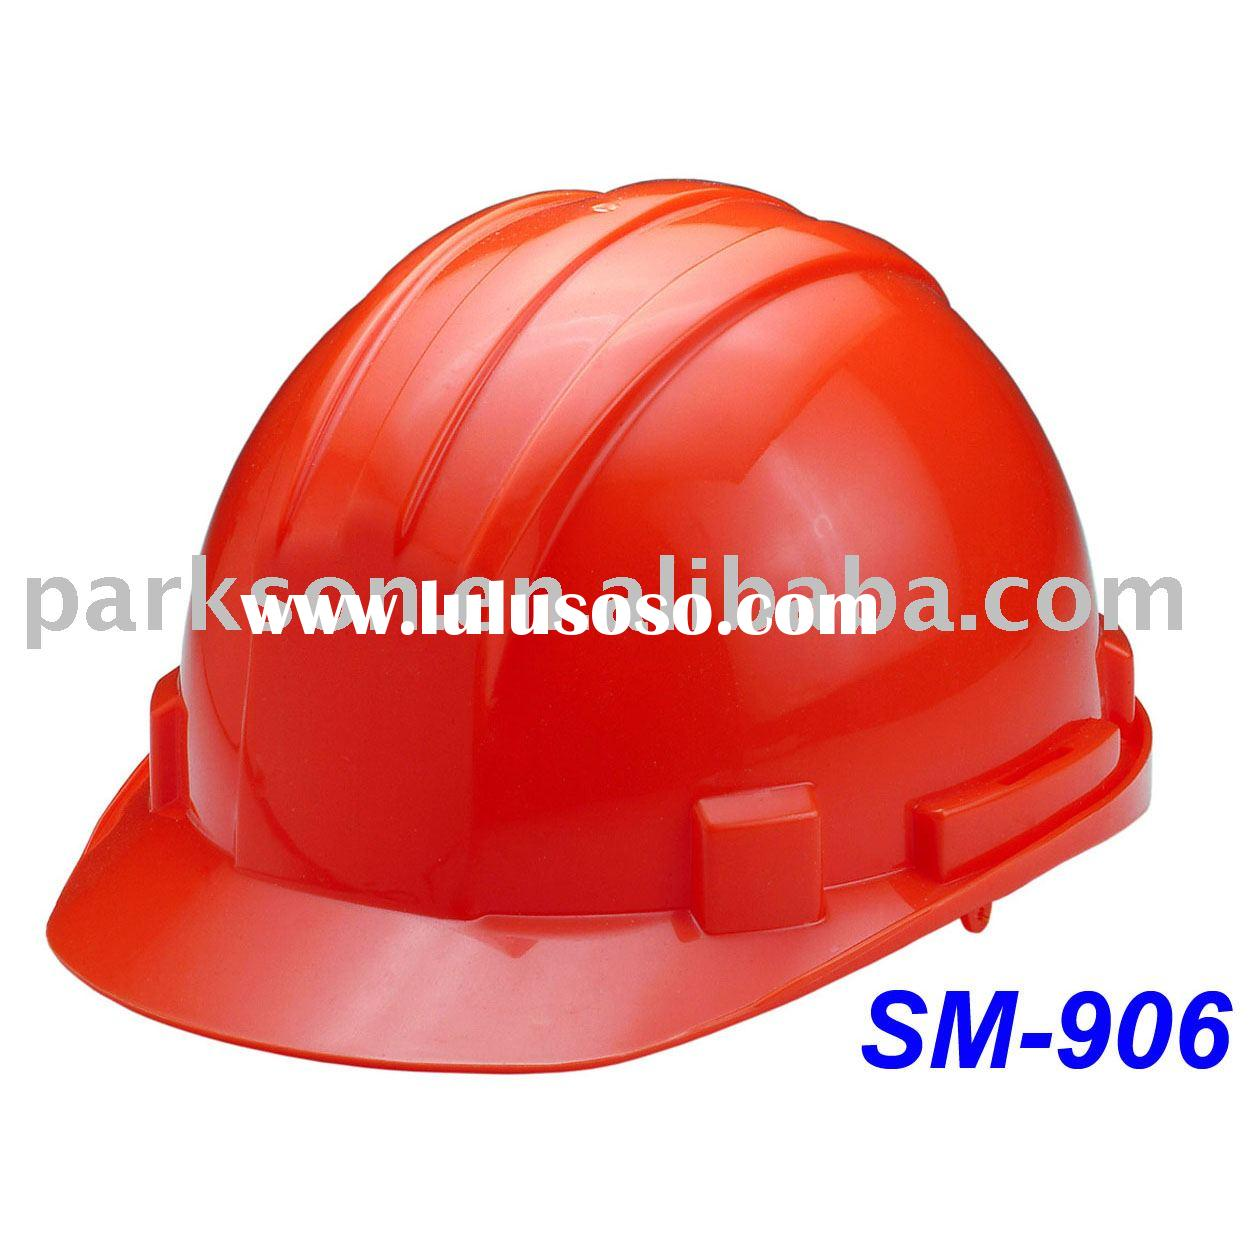 Safety Helmet, helmet, Work place helmet, working cap, head protection